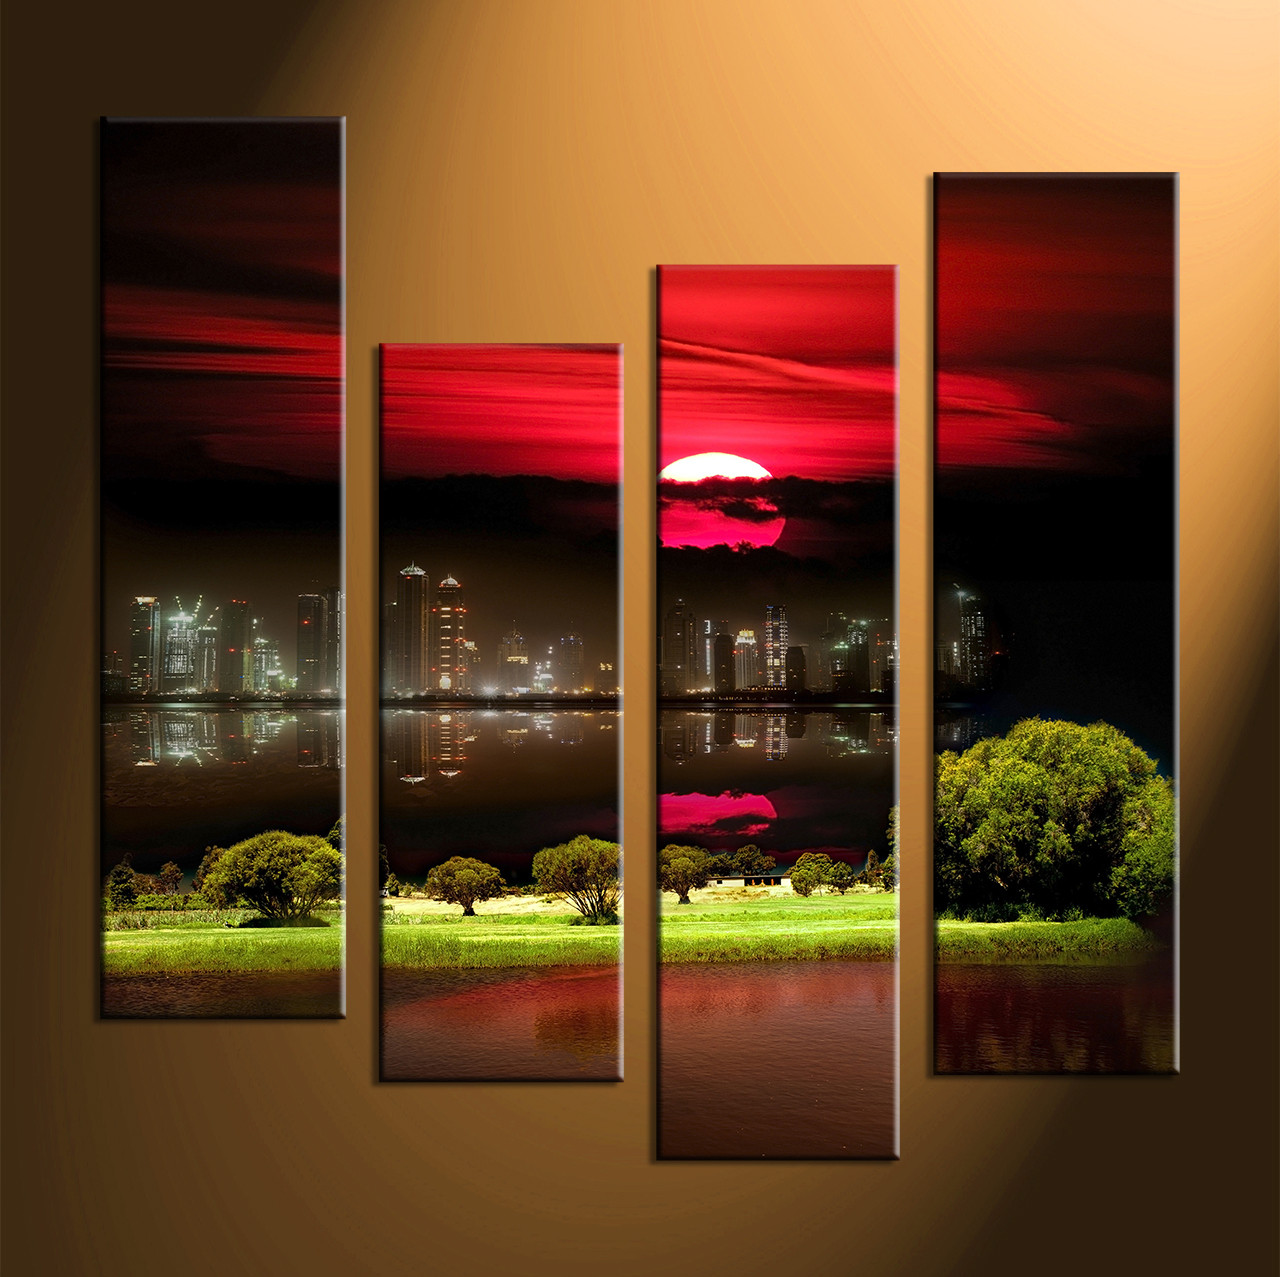 4 piece black red moon artcity grass large canvas printslandscape wall art